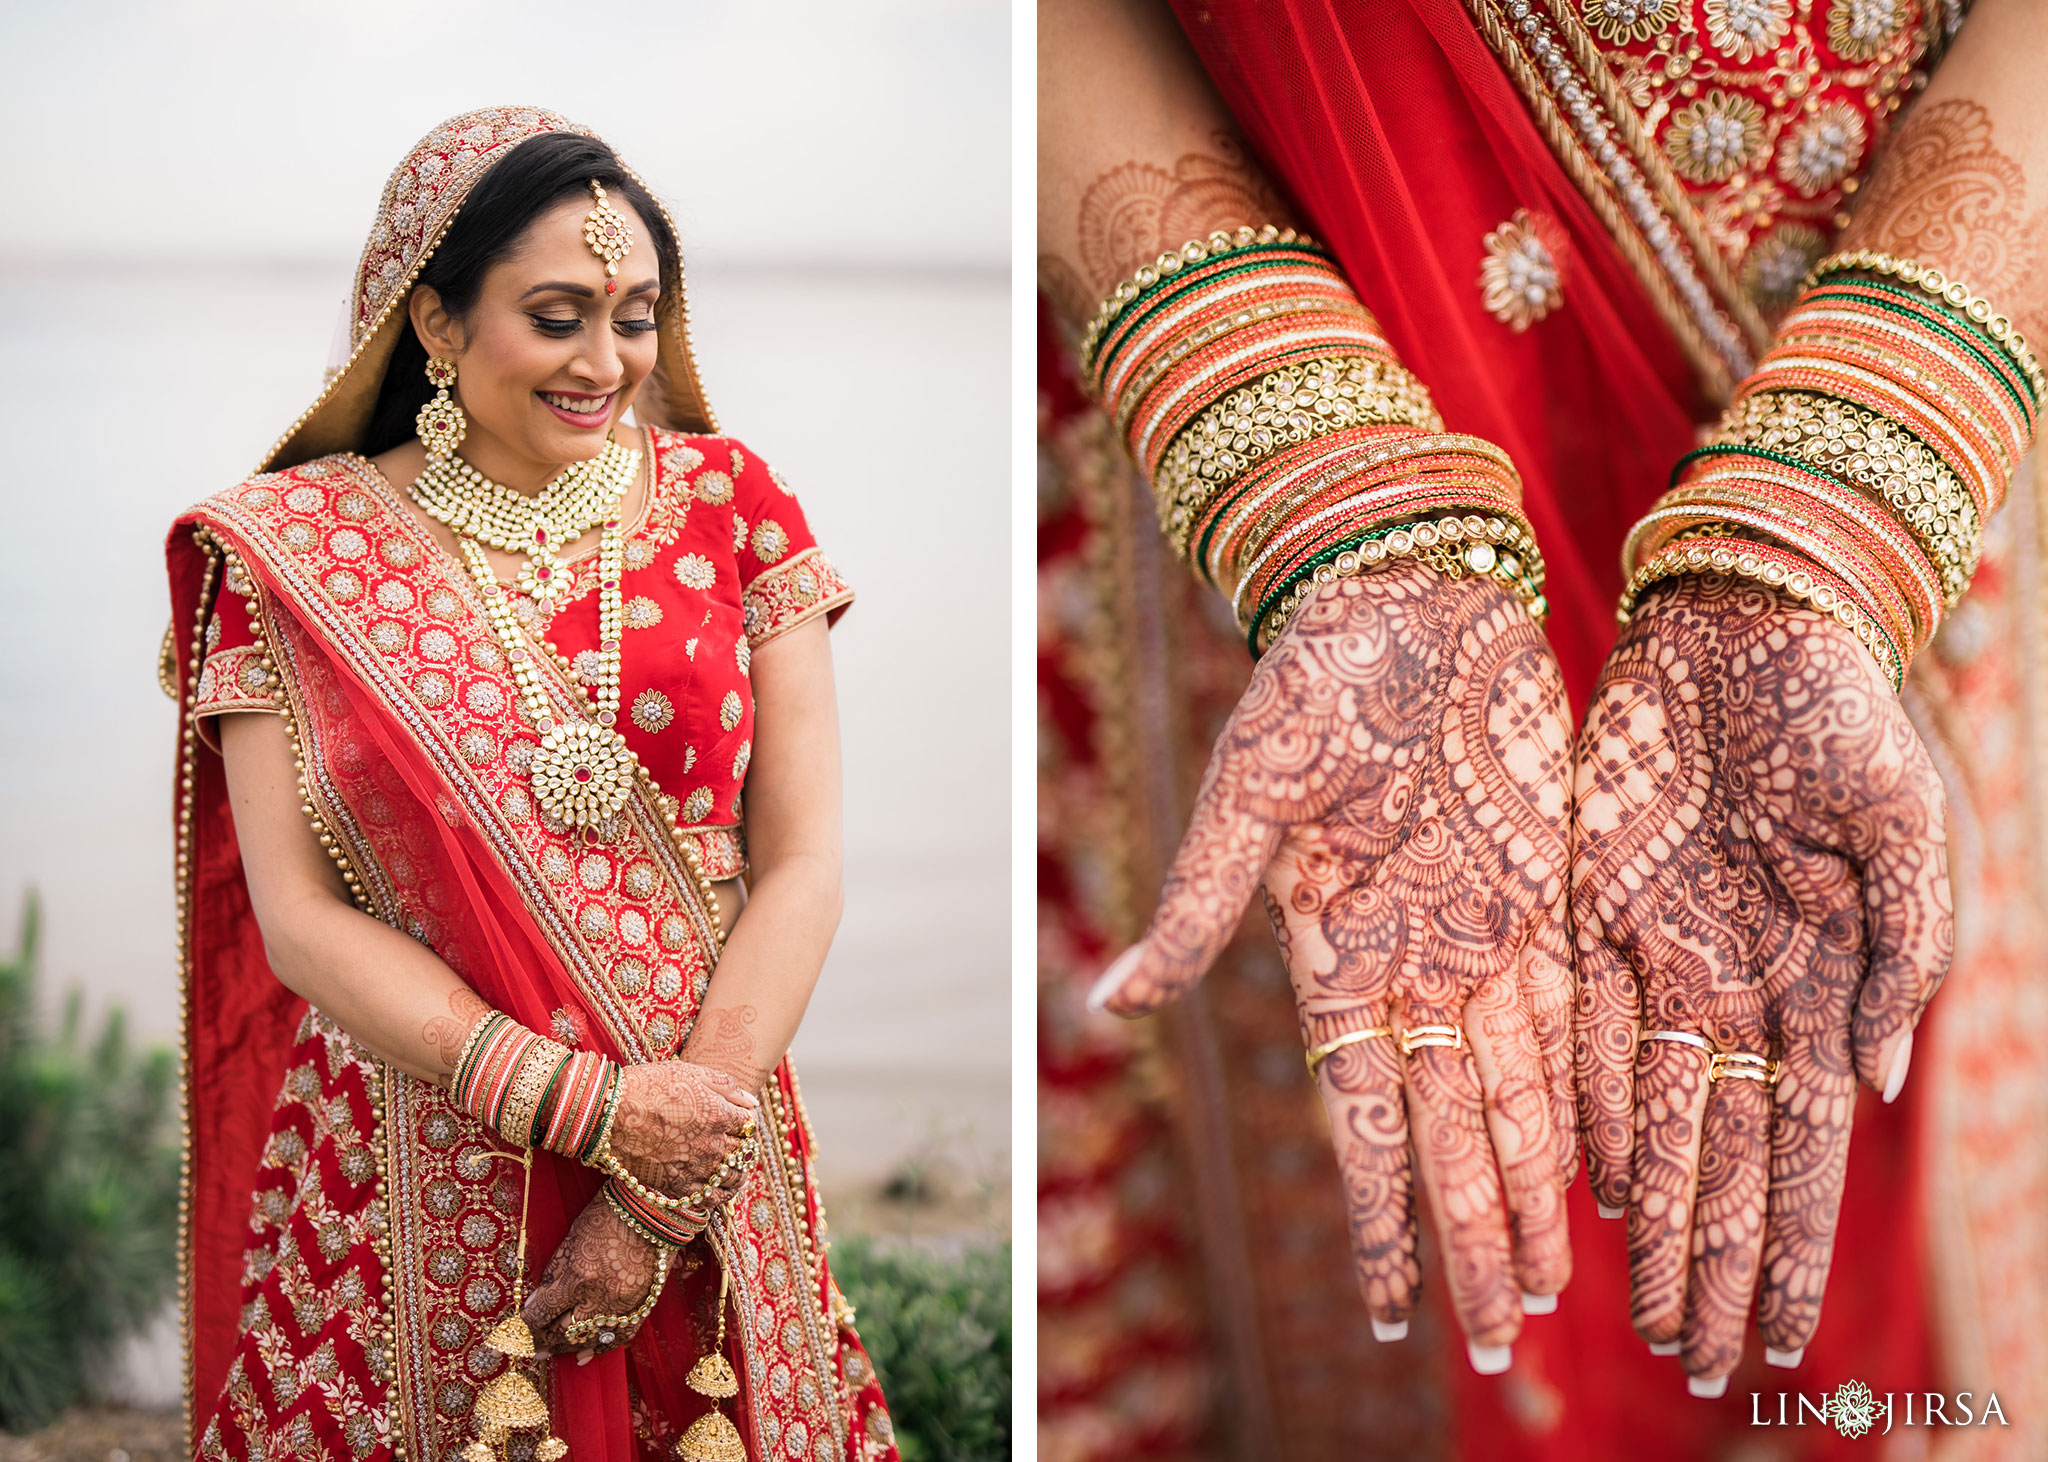 07 loews coronado bay resort indian bride wedding photography